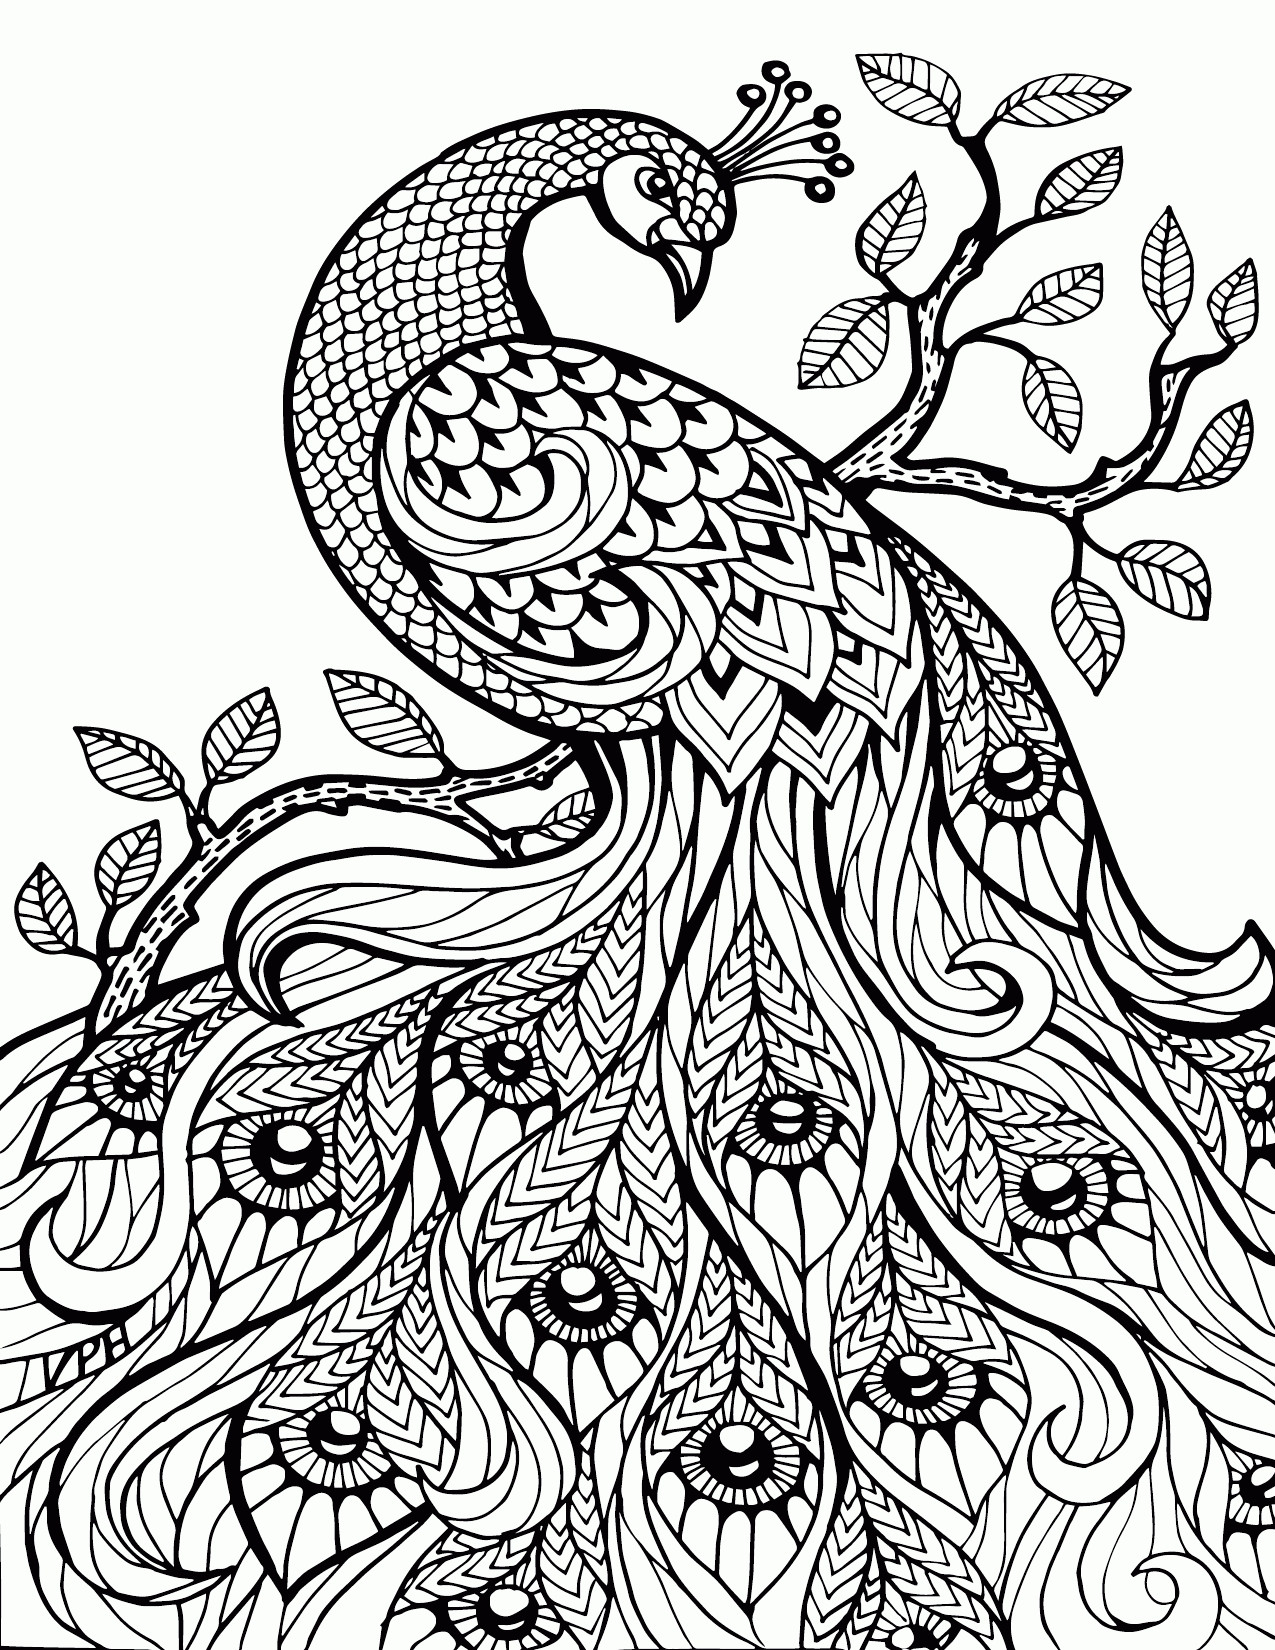 1275x1650 Printable Adult Coloring Pages Paisley H Stress Relief